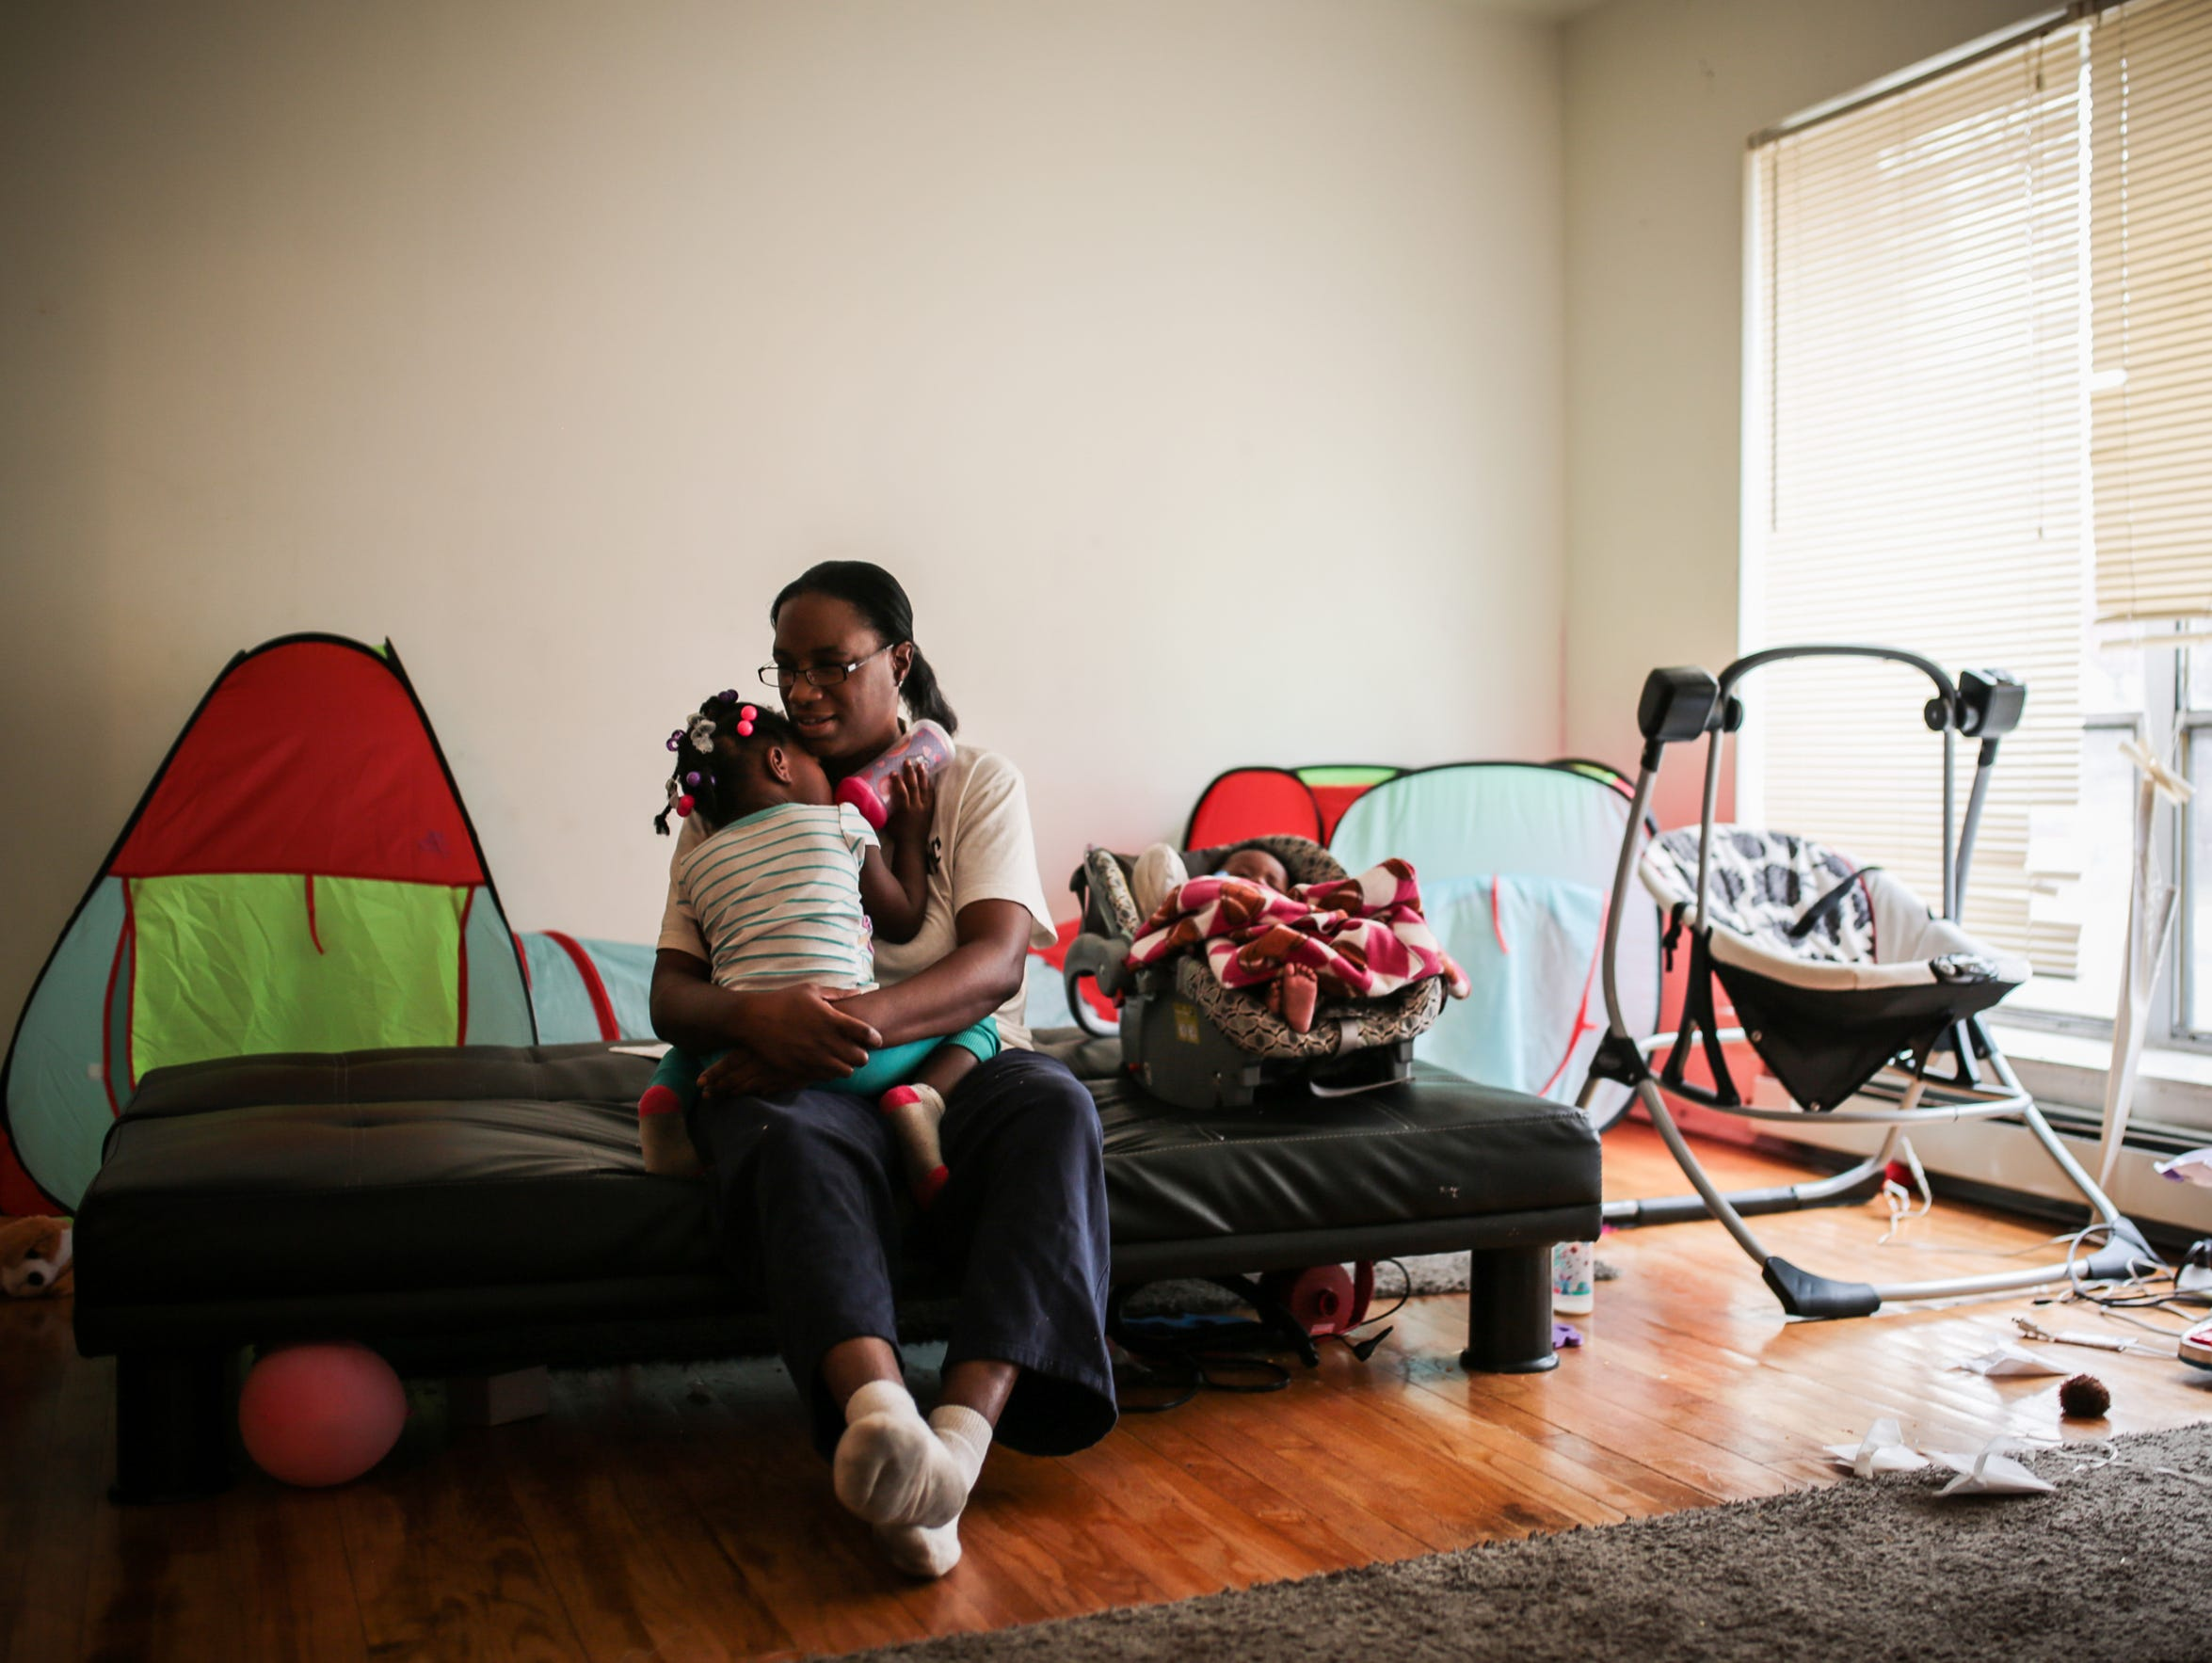 Felicia Darnell, 40, of Detroit, holds her 2-year-old